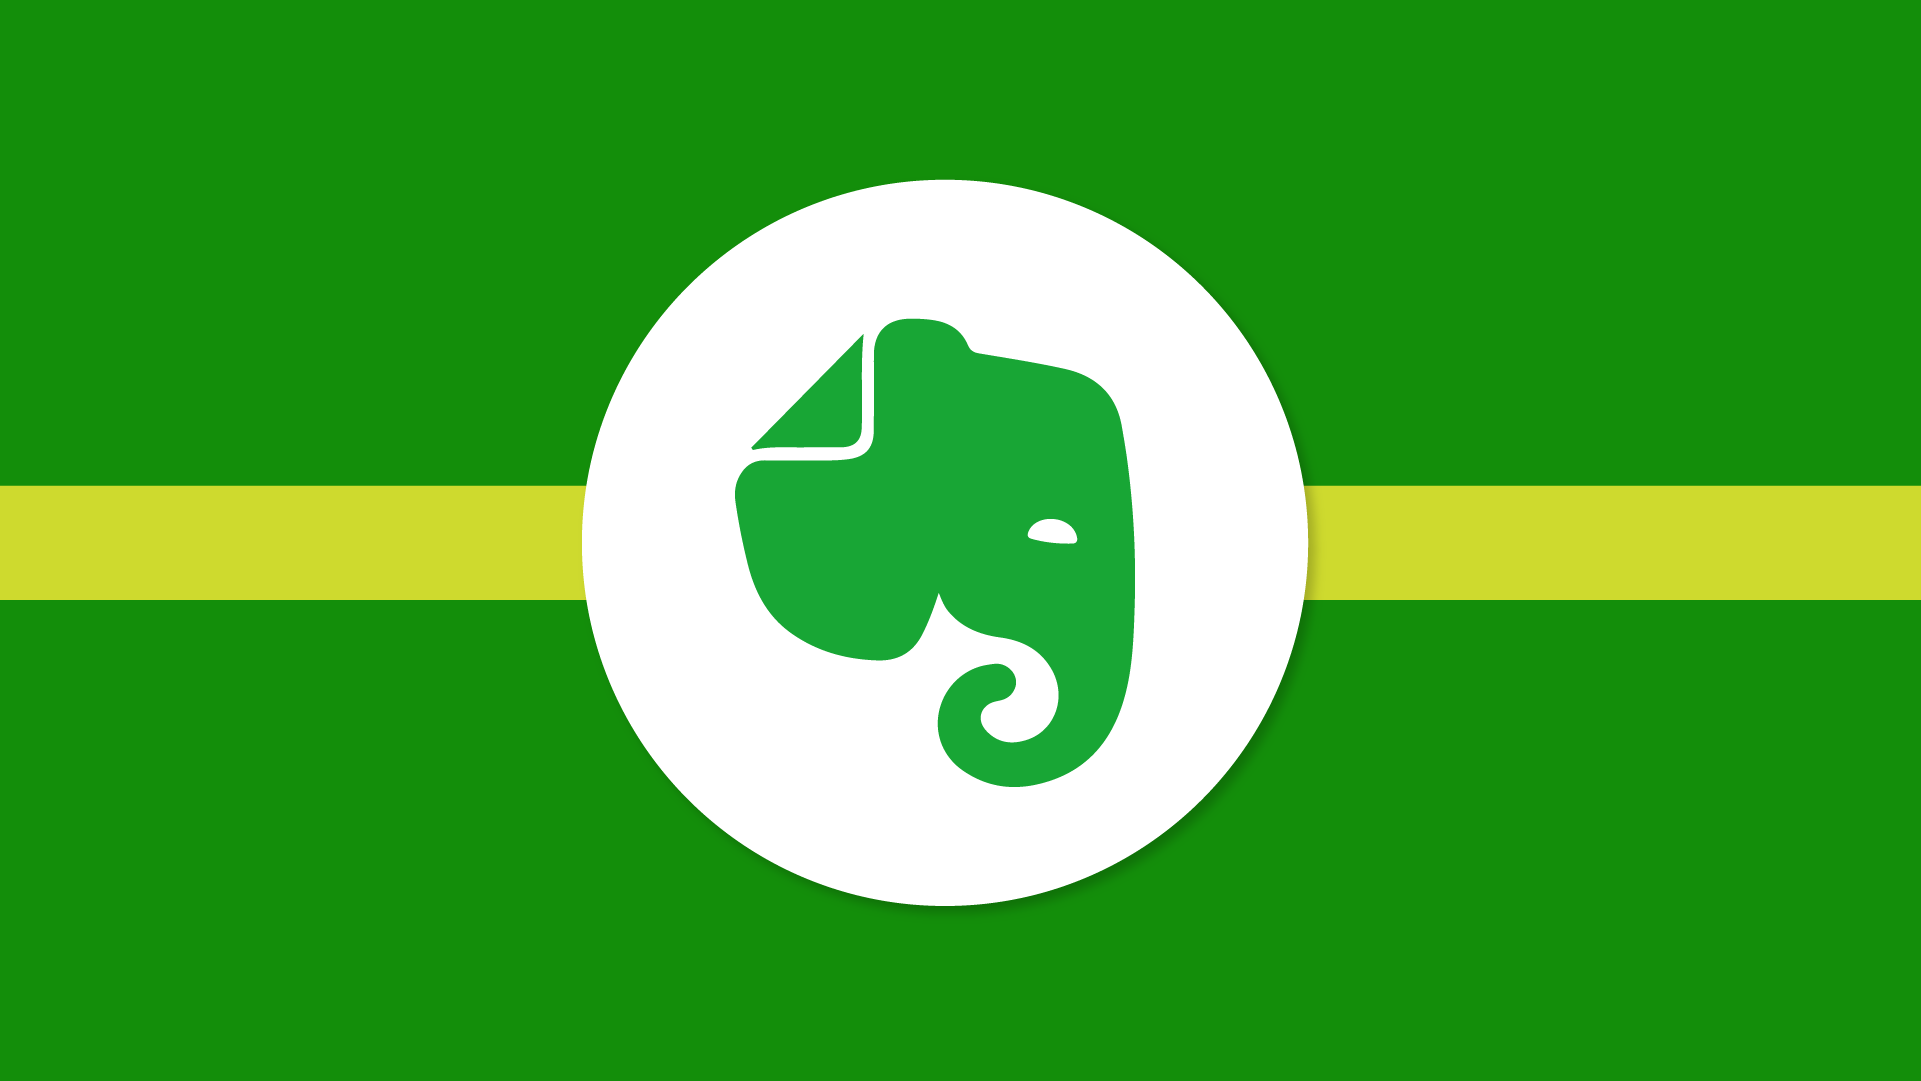 Evernote introduces major update with revamped design and handy new features